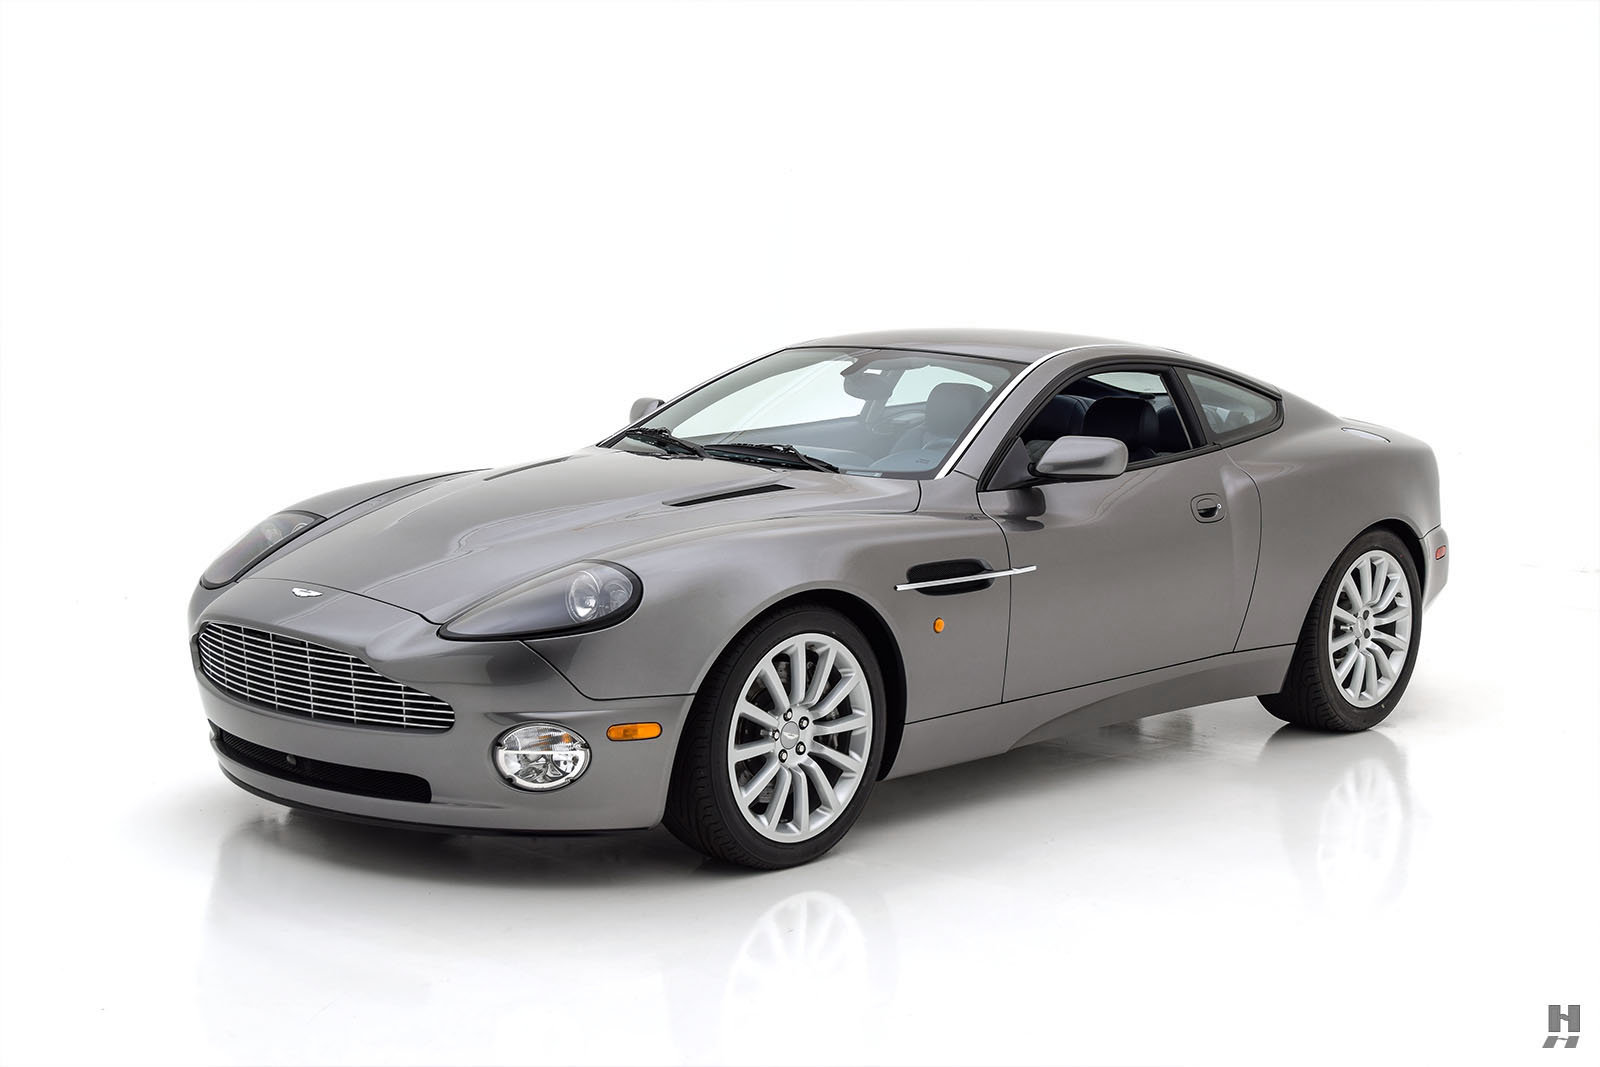 2002 ASTON MARTIN VANQUISH 6 SPEED MANUAL COUPE For Sale (picture 1 of 6)